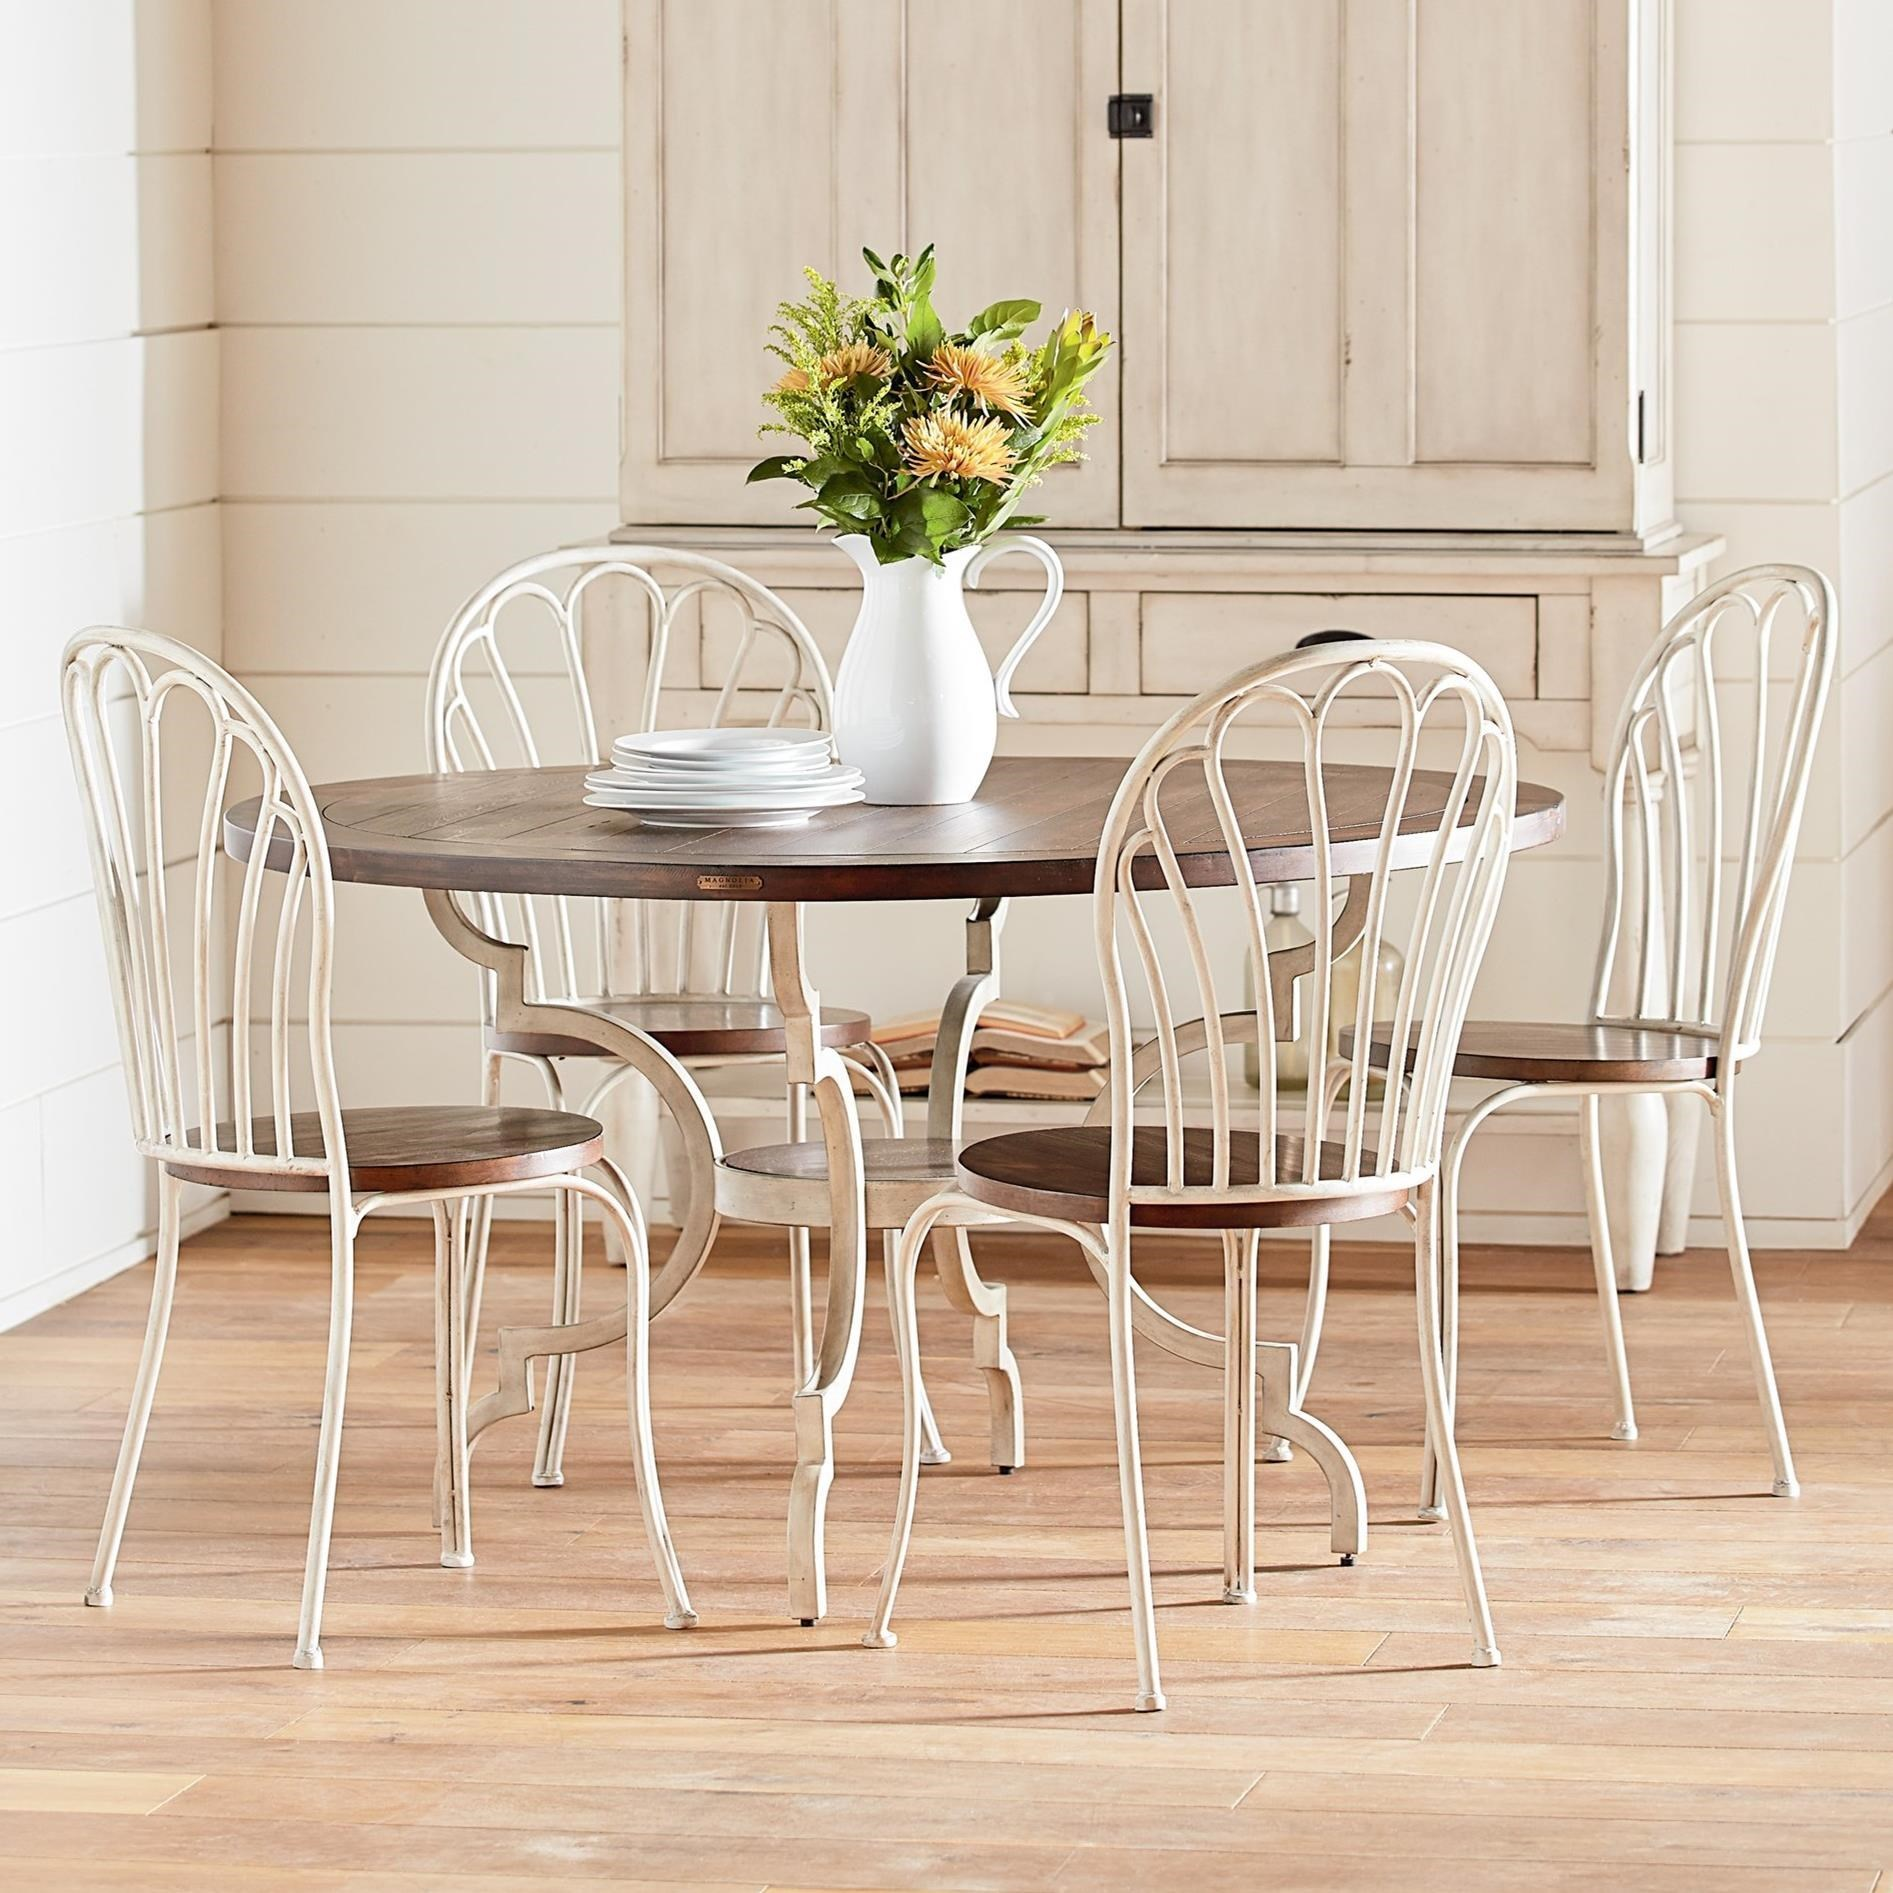 Magnolia Home By Joanna Gaines Primitive5 Piece Round Table U0026 Chair Set